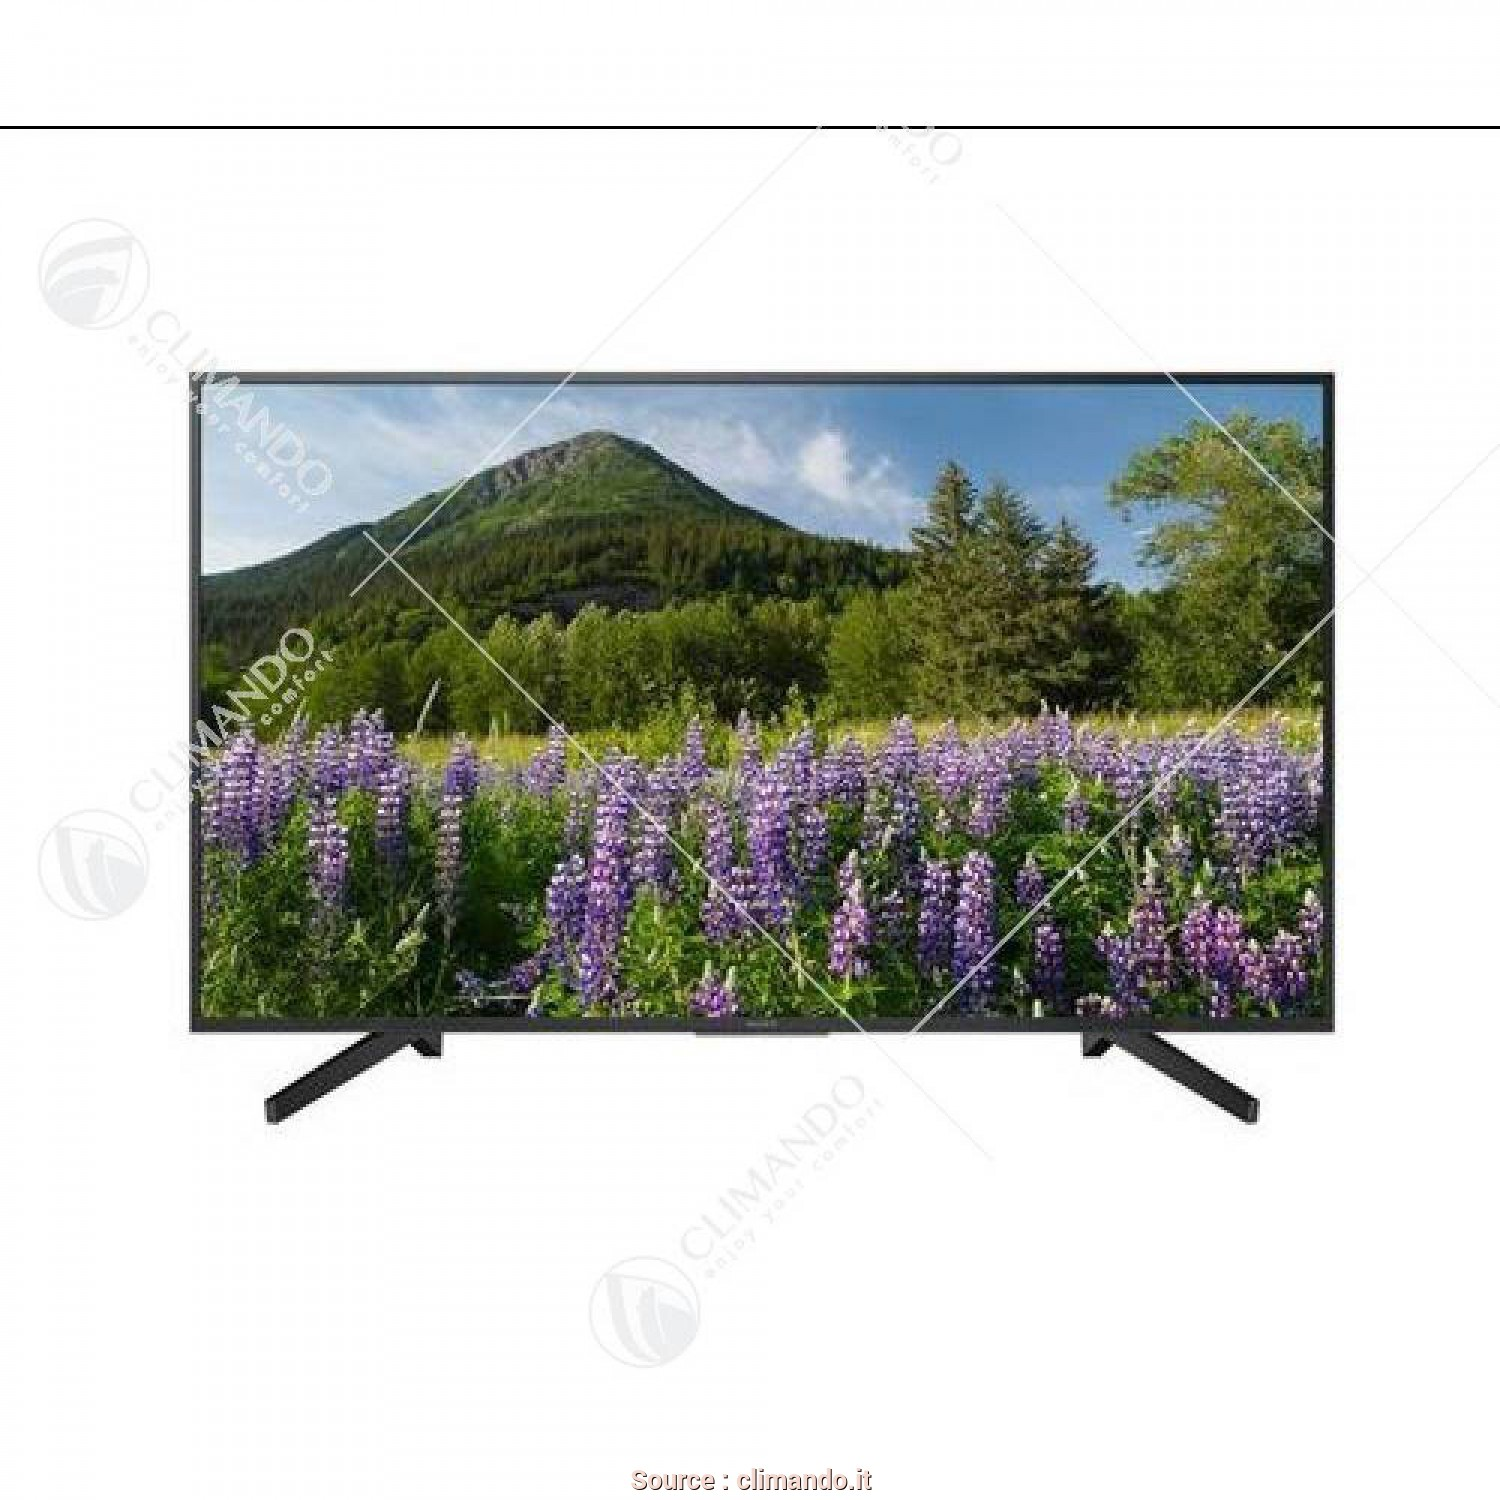 Distanza, Divano E Tv 55 Pollici, Minimalista Sony Tv KD 55XF7005, 55 Pollici 4K Ultra HD, Smart TV Wi-Fi, Climando.It